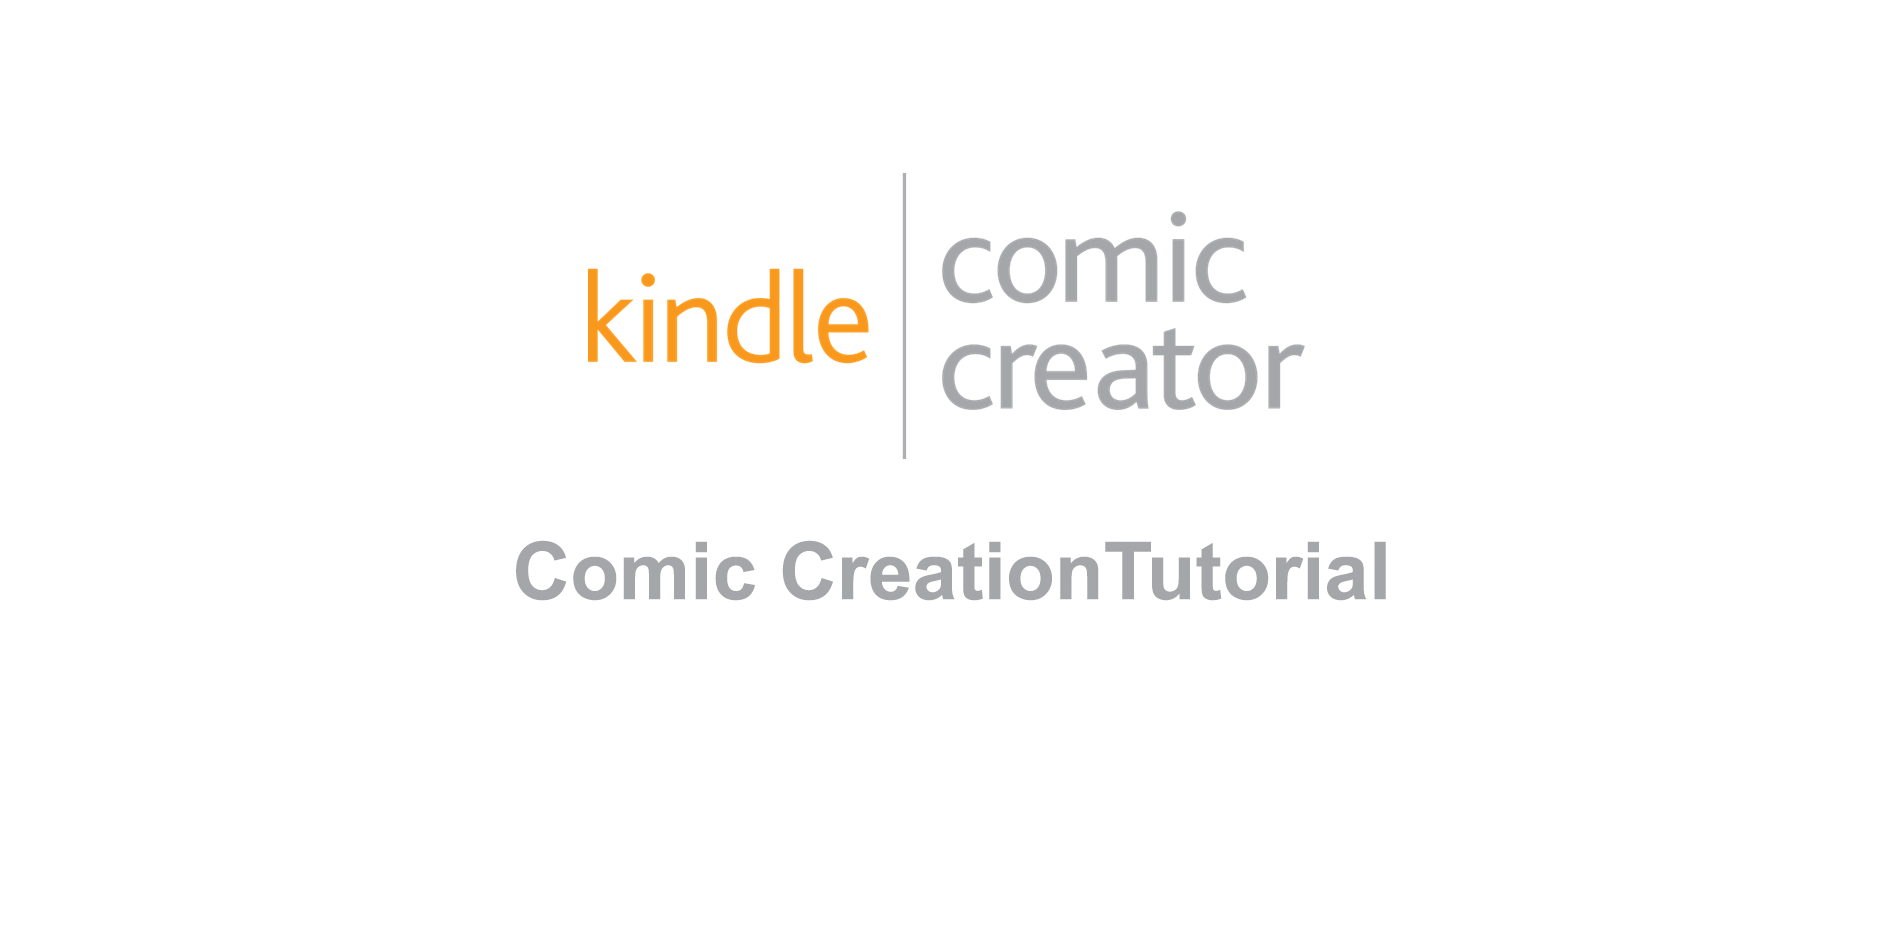 A Tutorial On Publishing A Comic Book Or Graphic Novel On